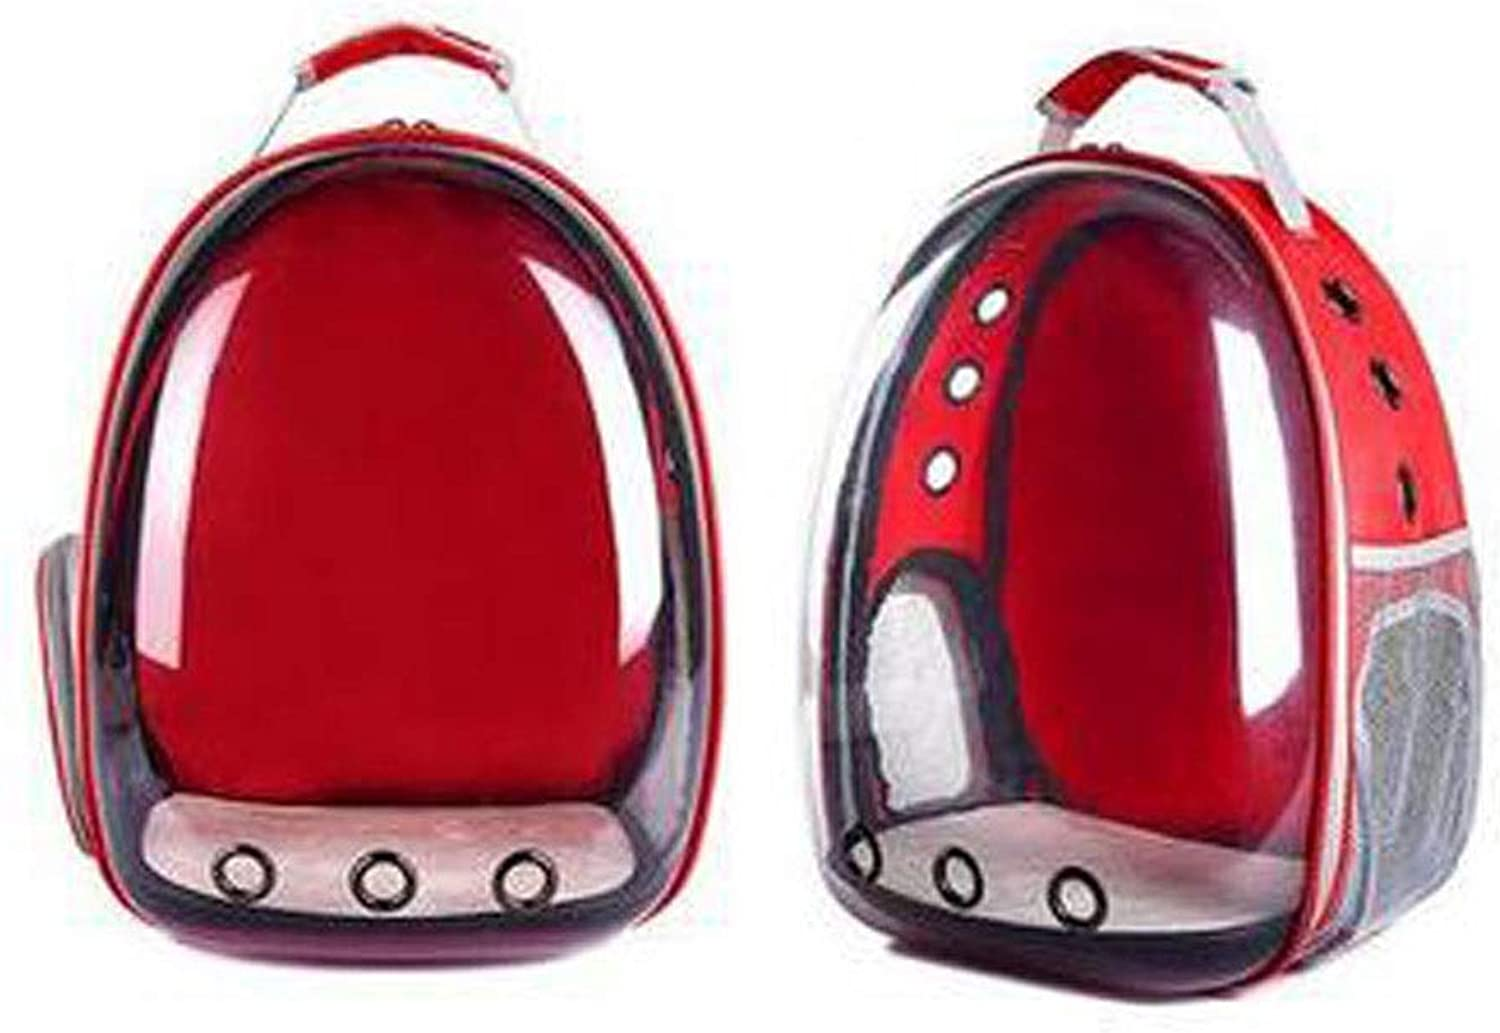 Guyuexuan Outdoor Pet Backpack, Space Capsule Pet Backpack, Transparent Waterproof Cat with Backpack Pet Travel Essentials (color   Red)